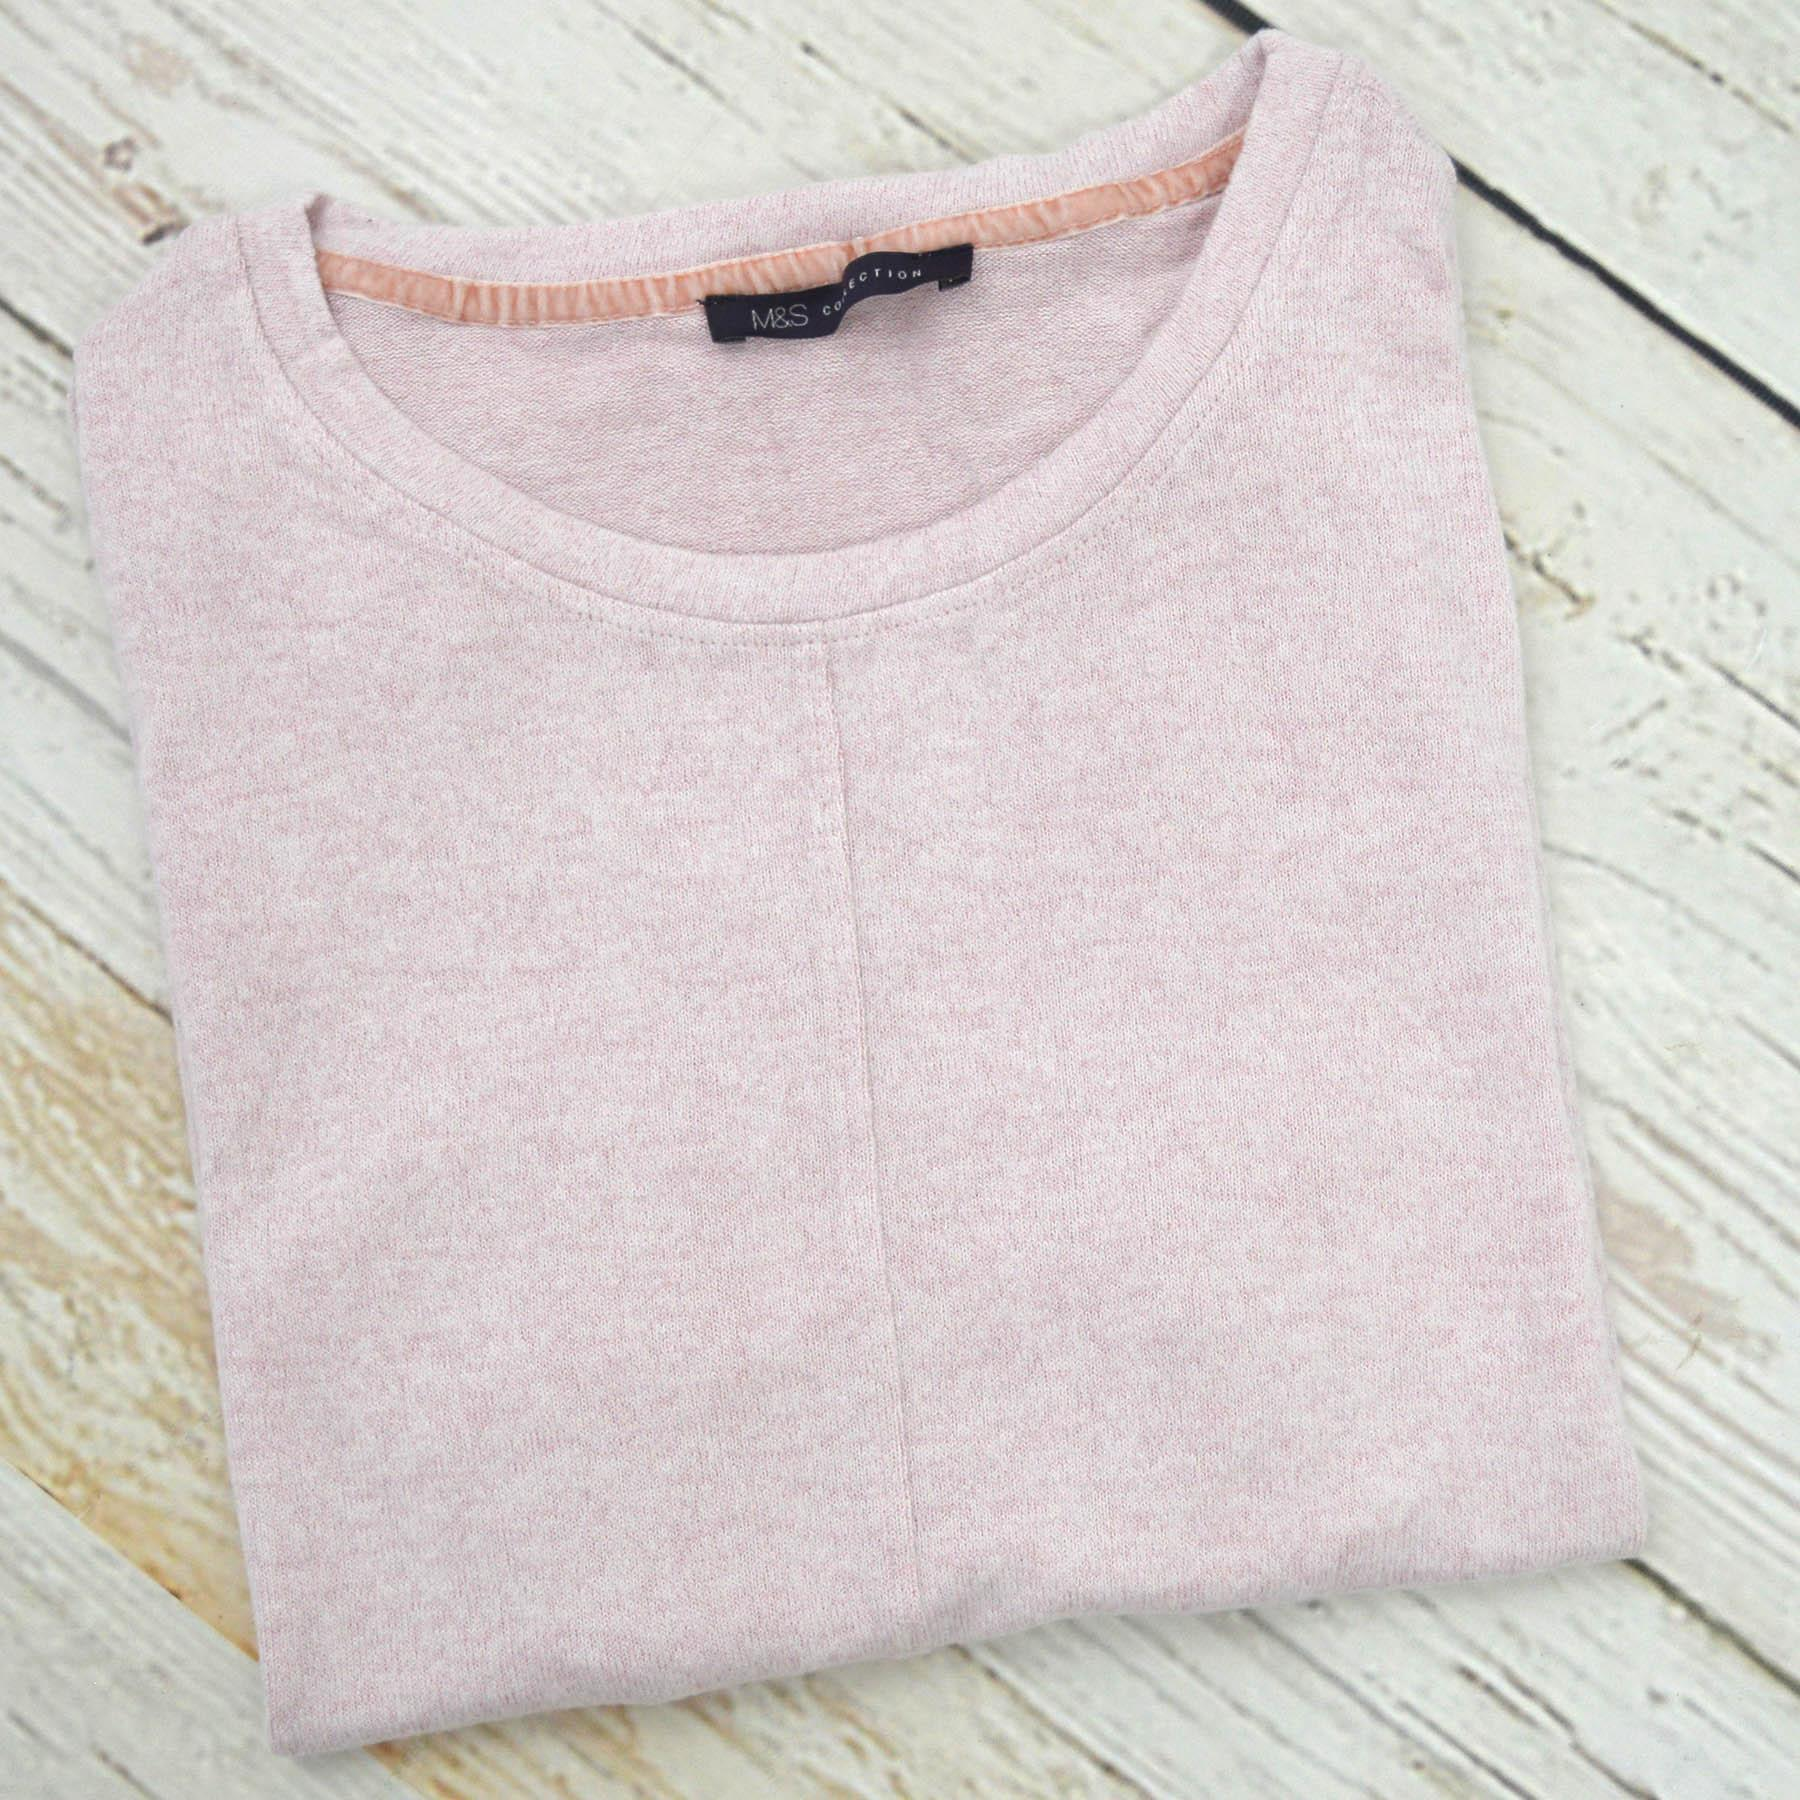 Ex-M-amp-S-Round-Neck-Fine-Knit-Short-Sleeve-Jumper-Top-Pale-Pink-or-Navy-Size-8-24 thumbnail 16